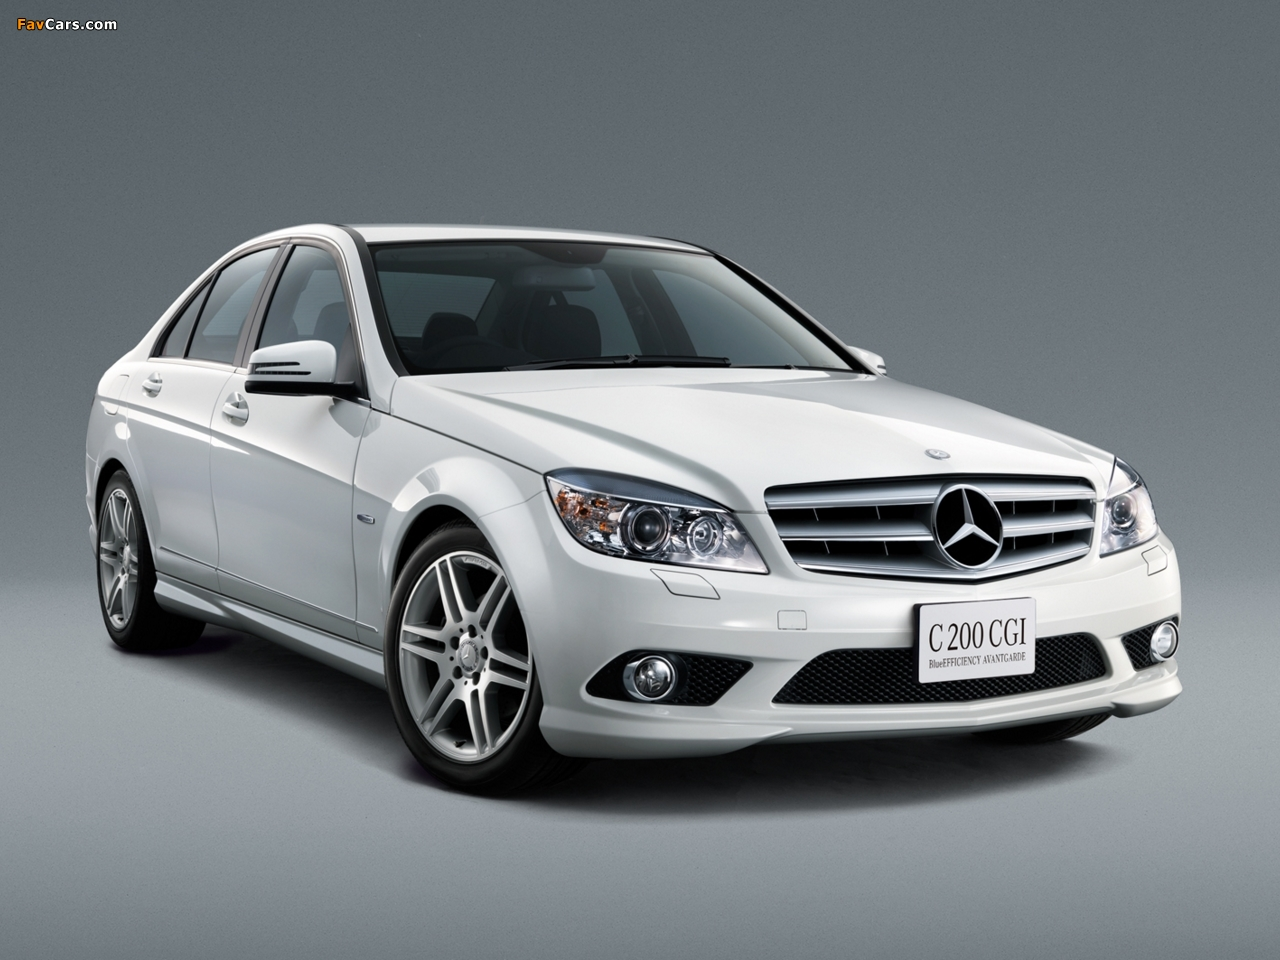 pictures of mercedes benz c 200 cgi sport jp spec w204. Cars Review. Best American Auto & Cars Review